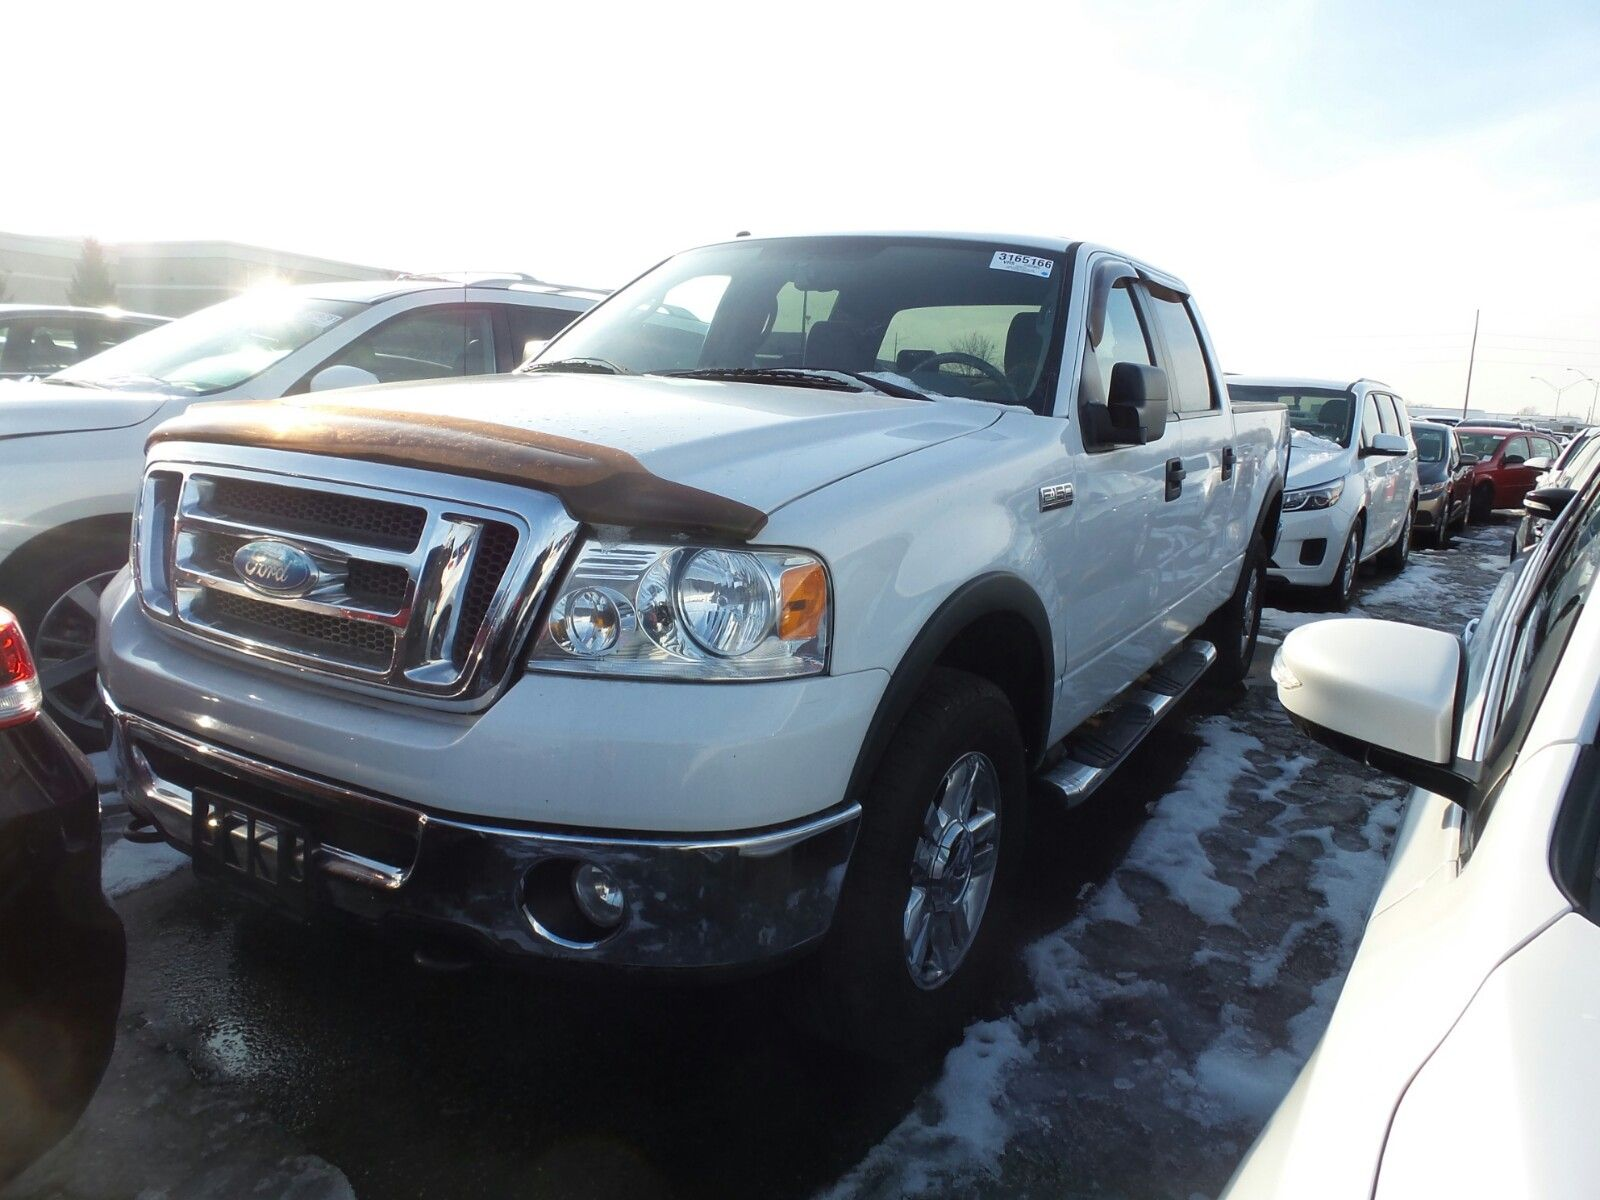 2008 Ford F150 4x4 Cr Specifications And Details For Vin Cruise Control 1ftpw14v38fc34778